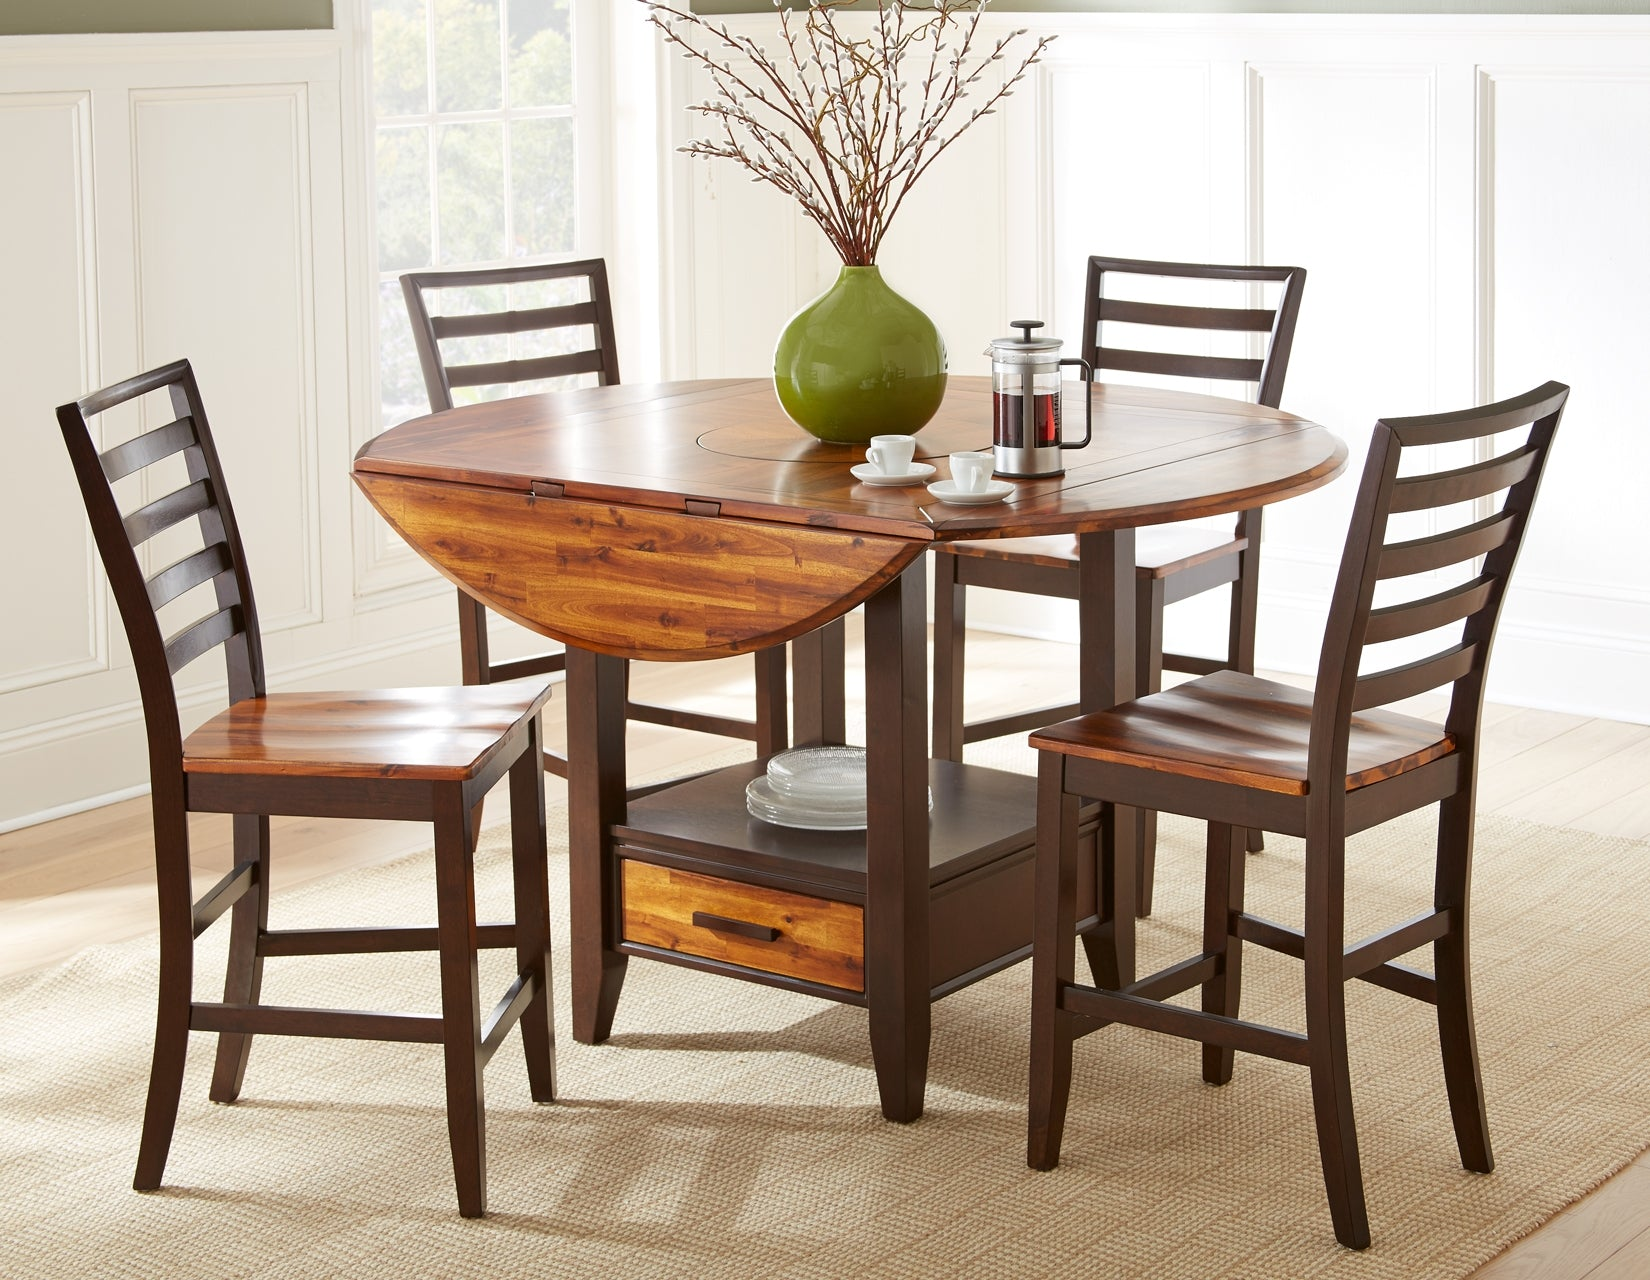 WEEKLY or MONTHLY. Abaco Drop Leaf Table & 9 Dining Chairs ...